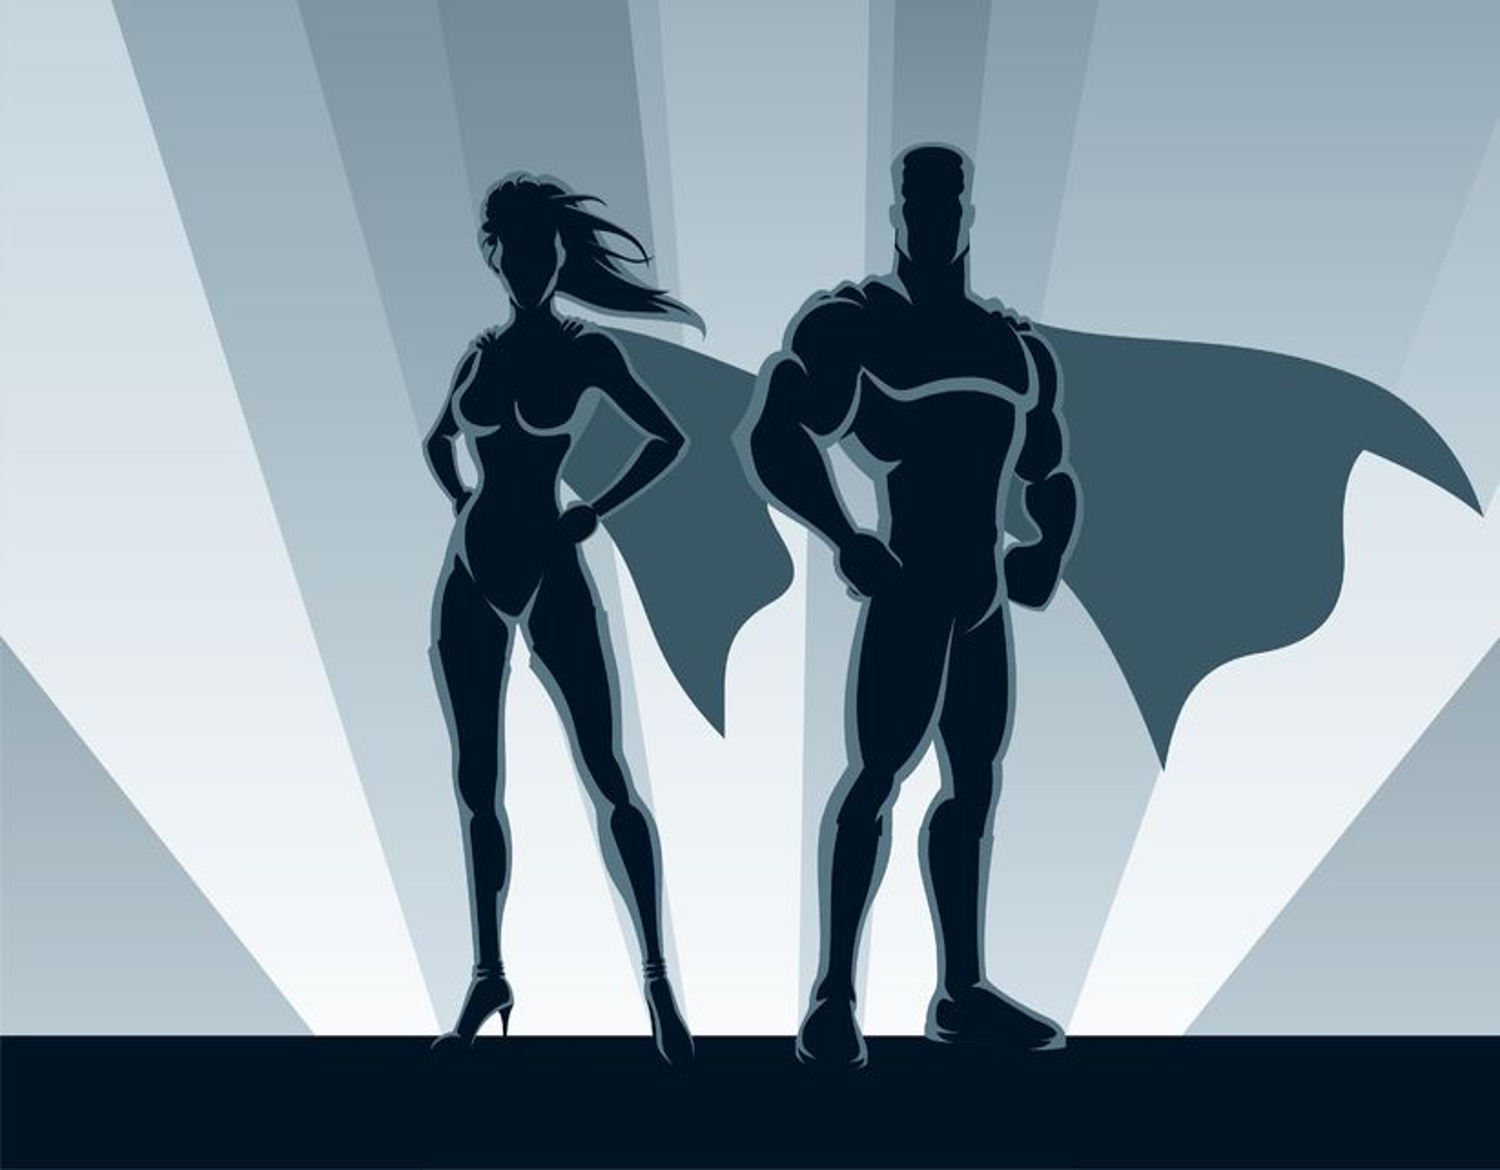 Superheroes stylized graphic